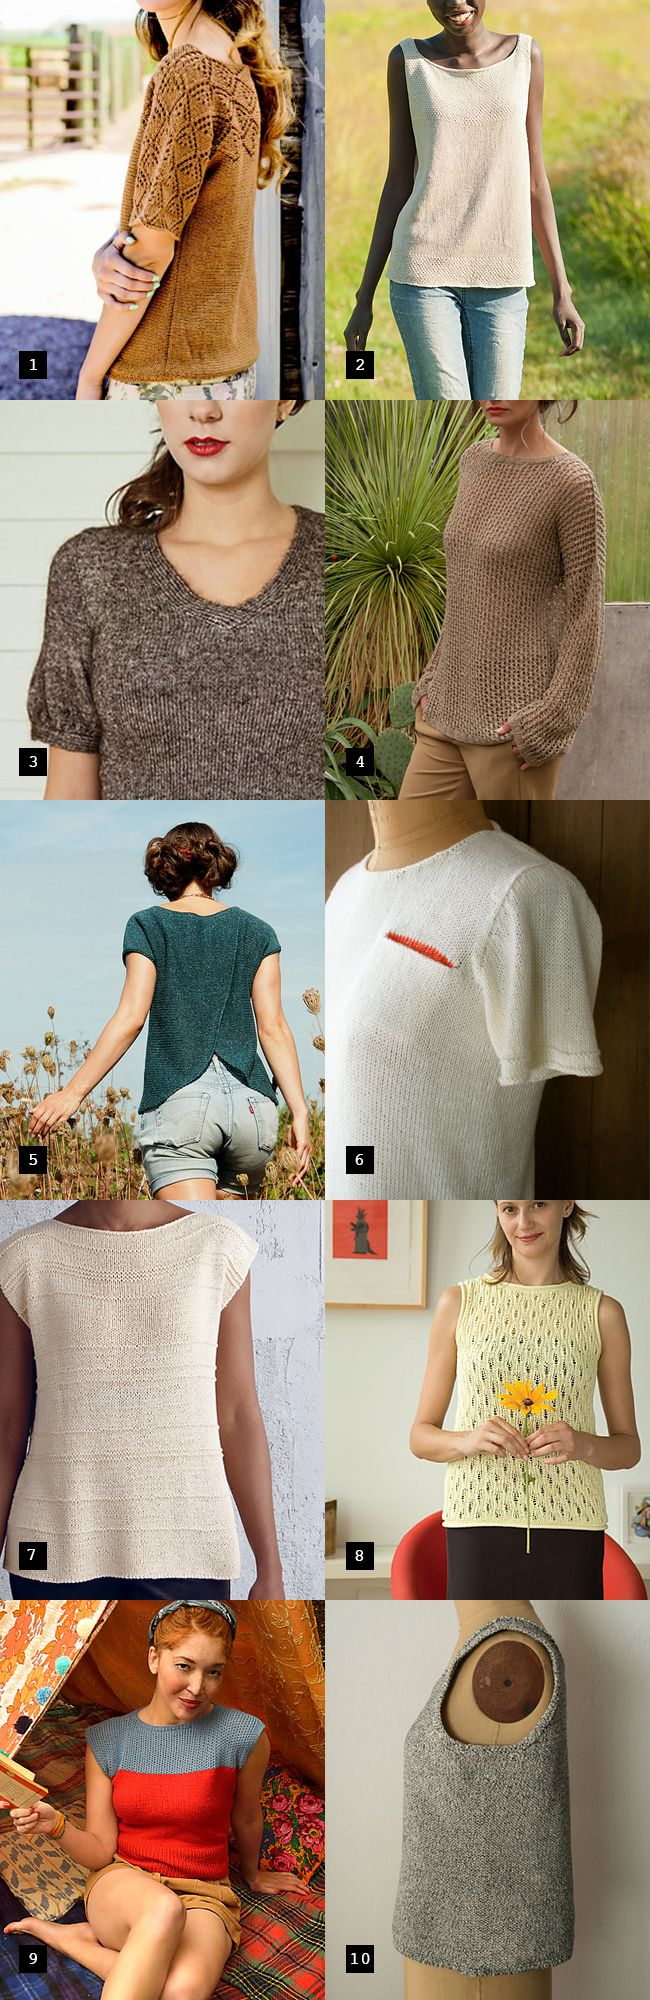 Summer Sweater Knitting Patterns : 17 Best images about Knit With Cotton! on Pinterest Cowl patterns, Sweater ...